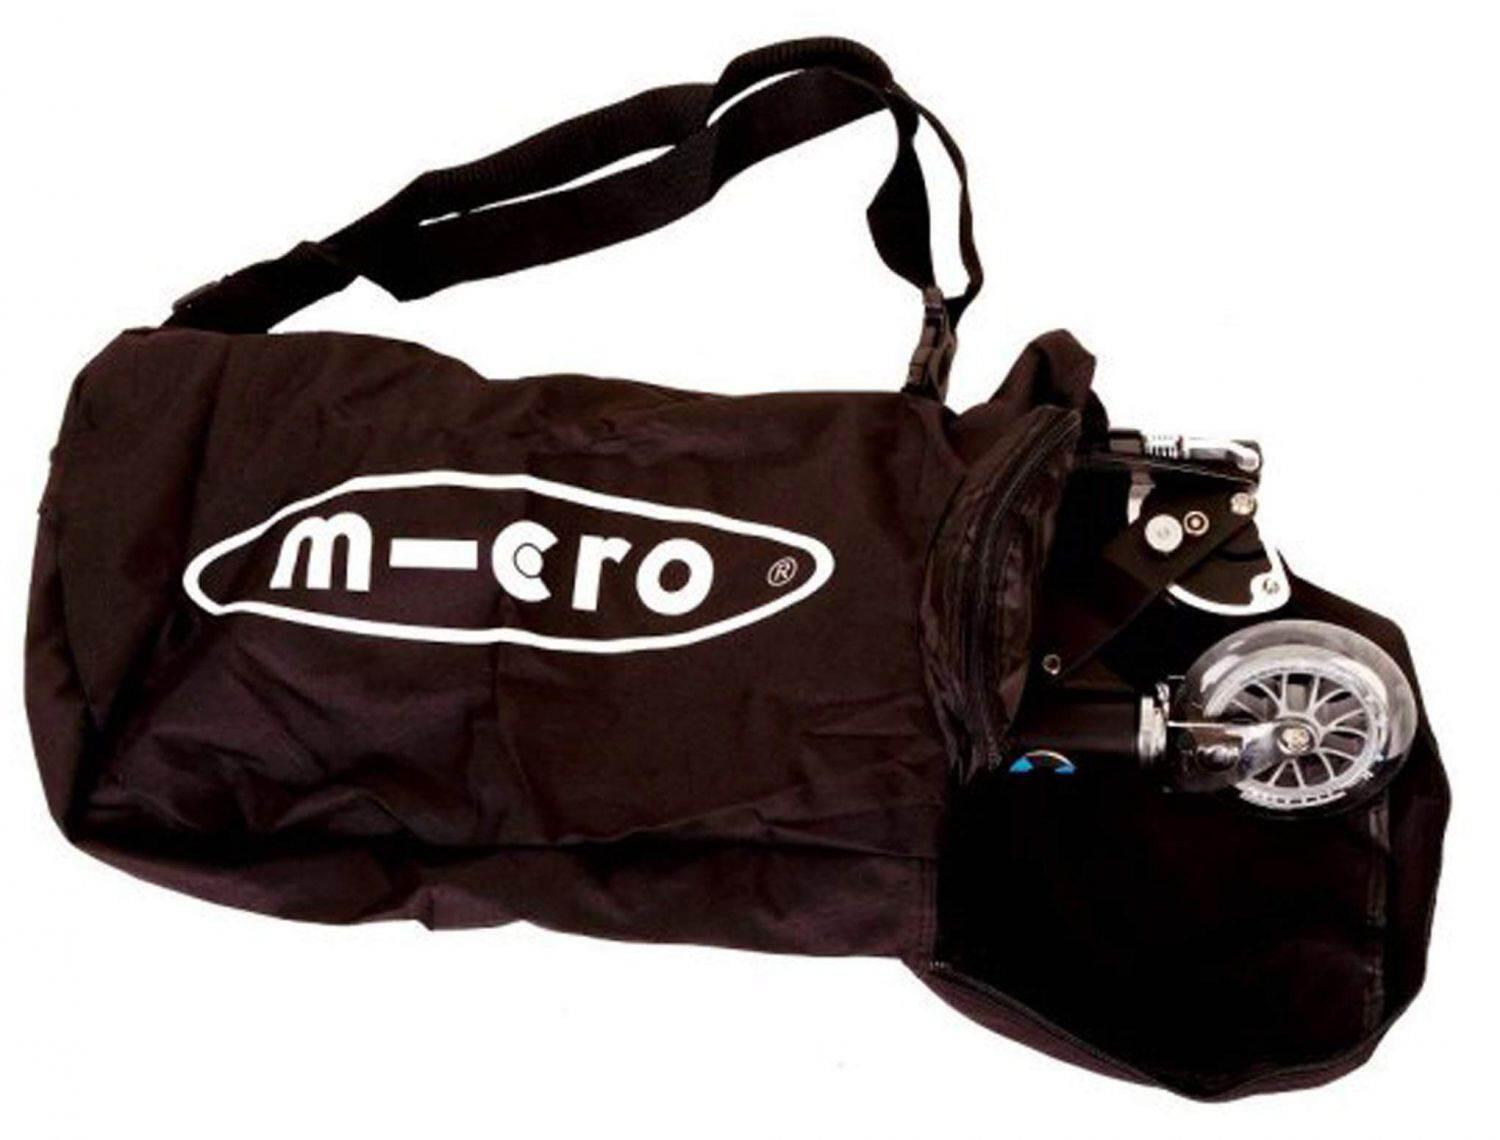 micro-scootertasche-bag-in-bag-farbe-schwarz-